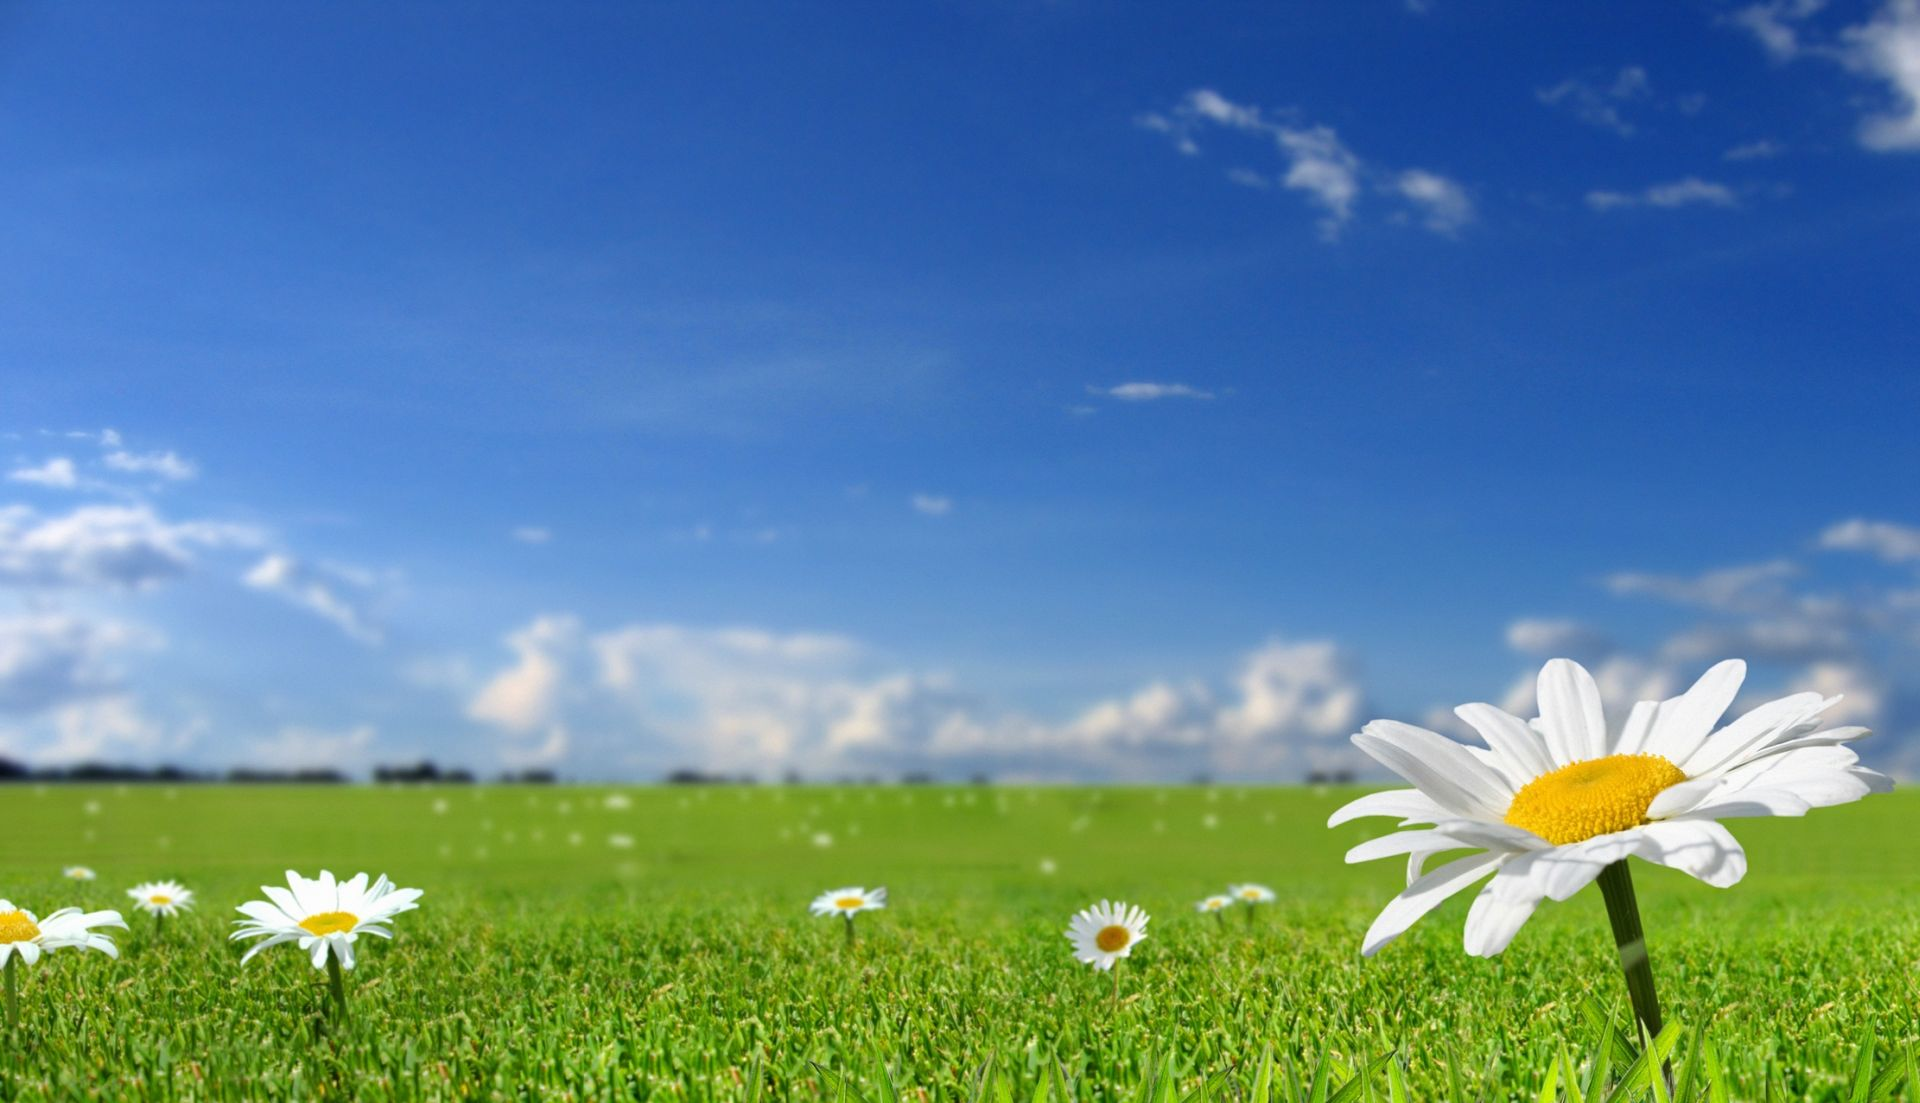 summer blue sky and grass with flowers